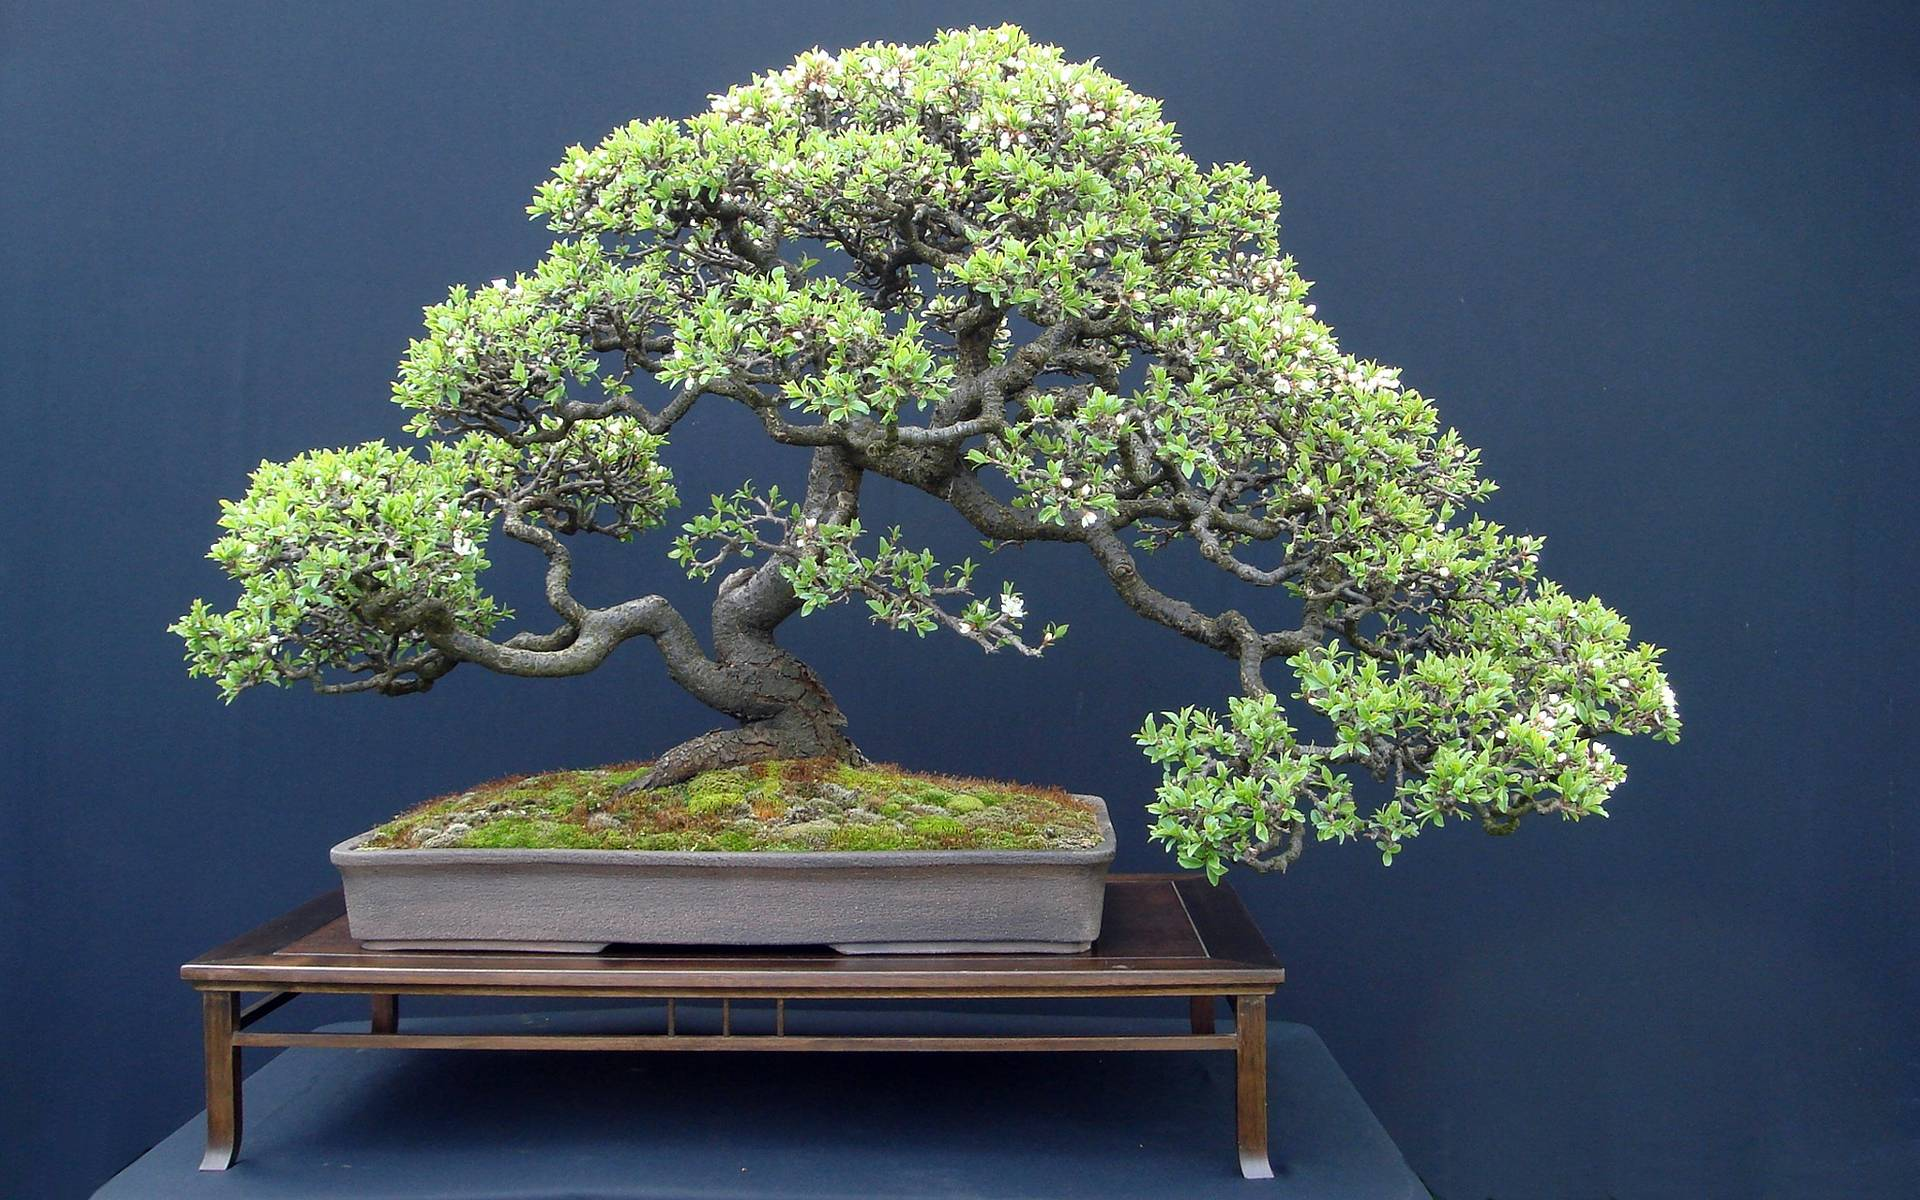 Bonsai Tree widescreen wallpaper | Wide-